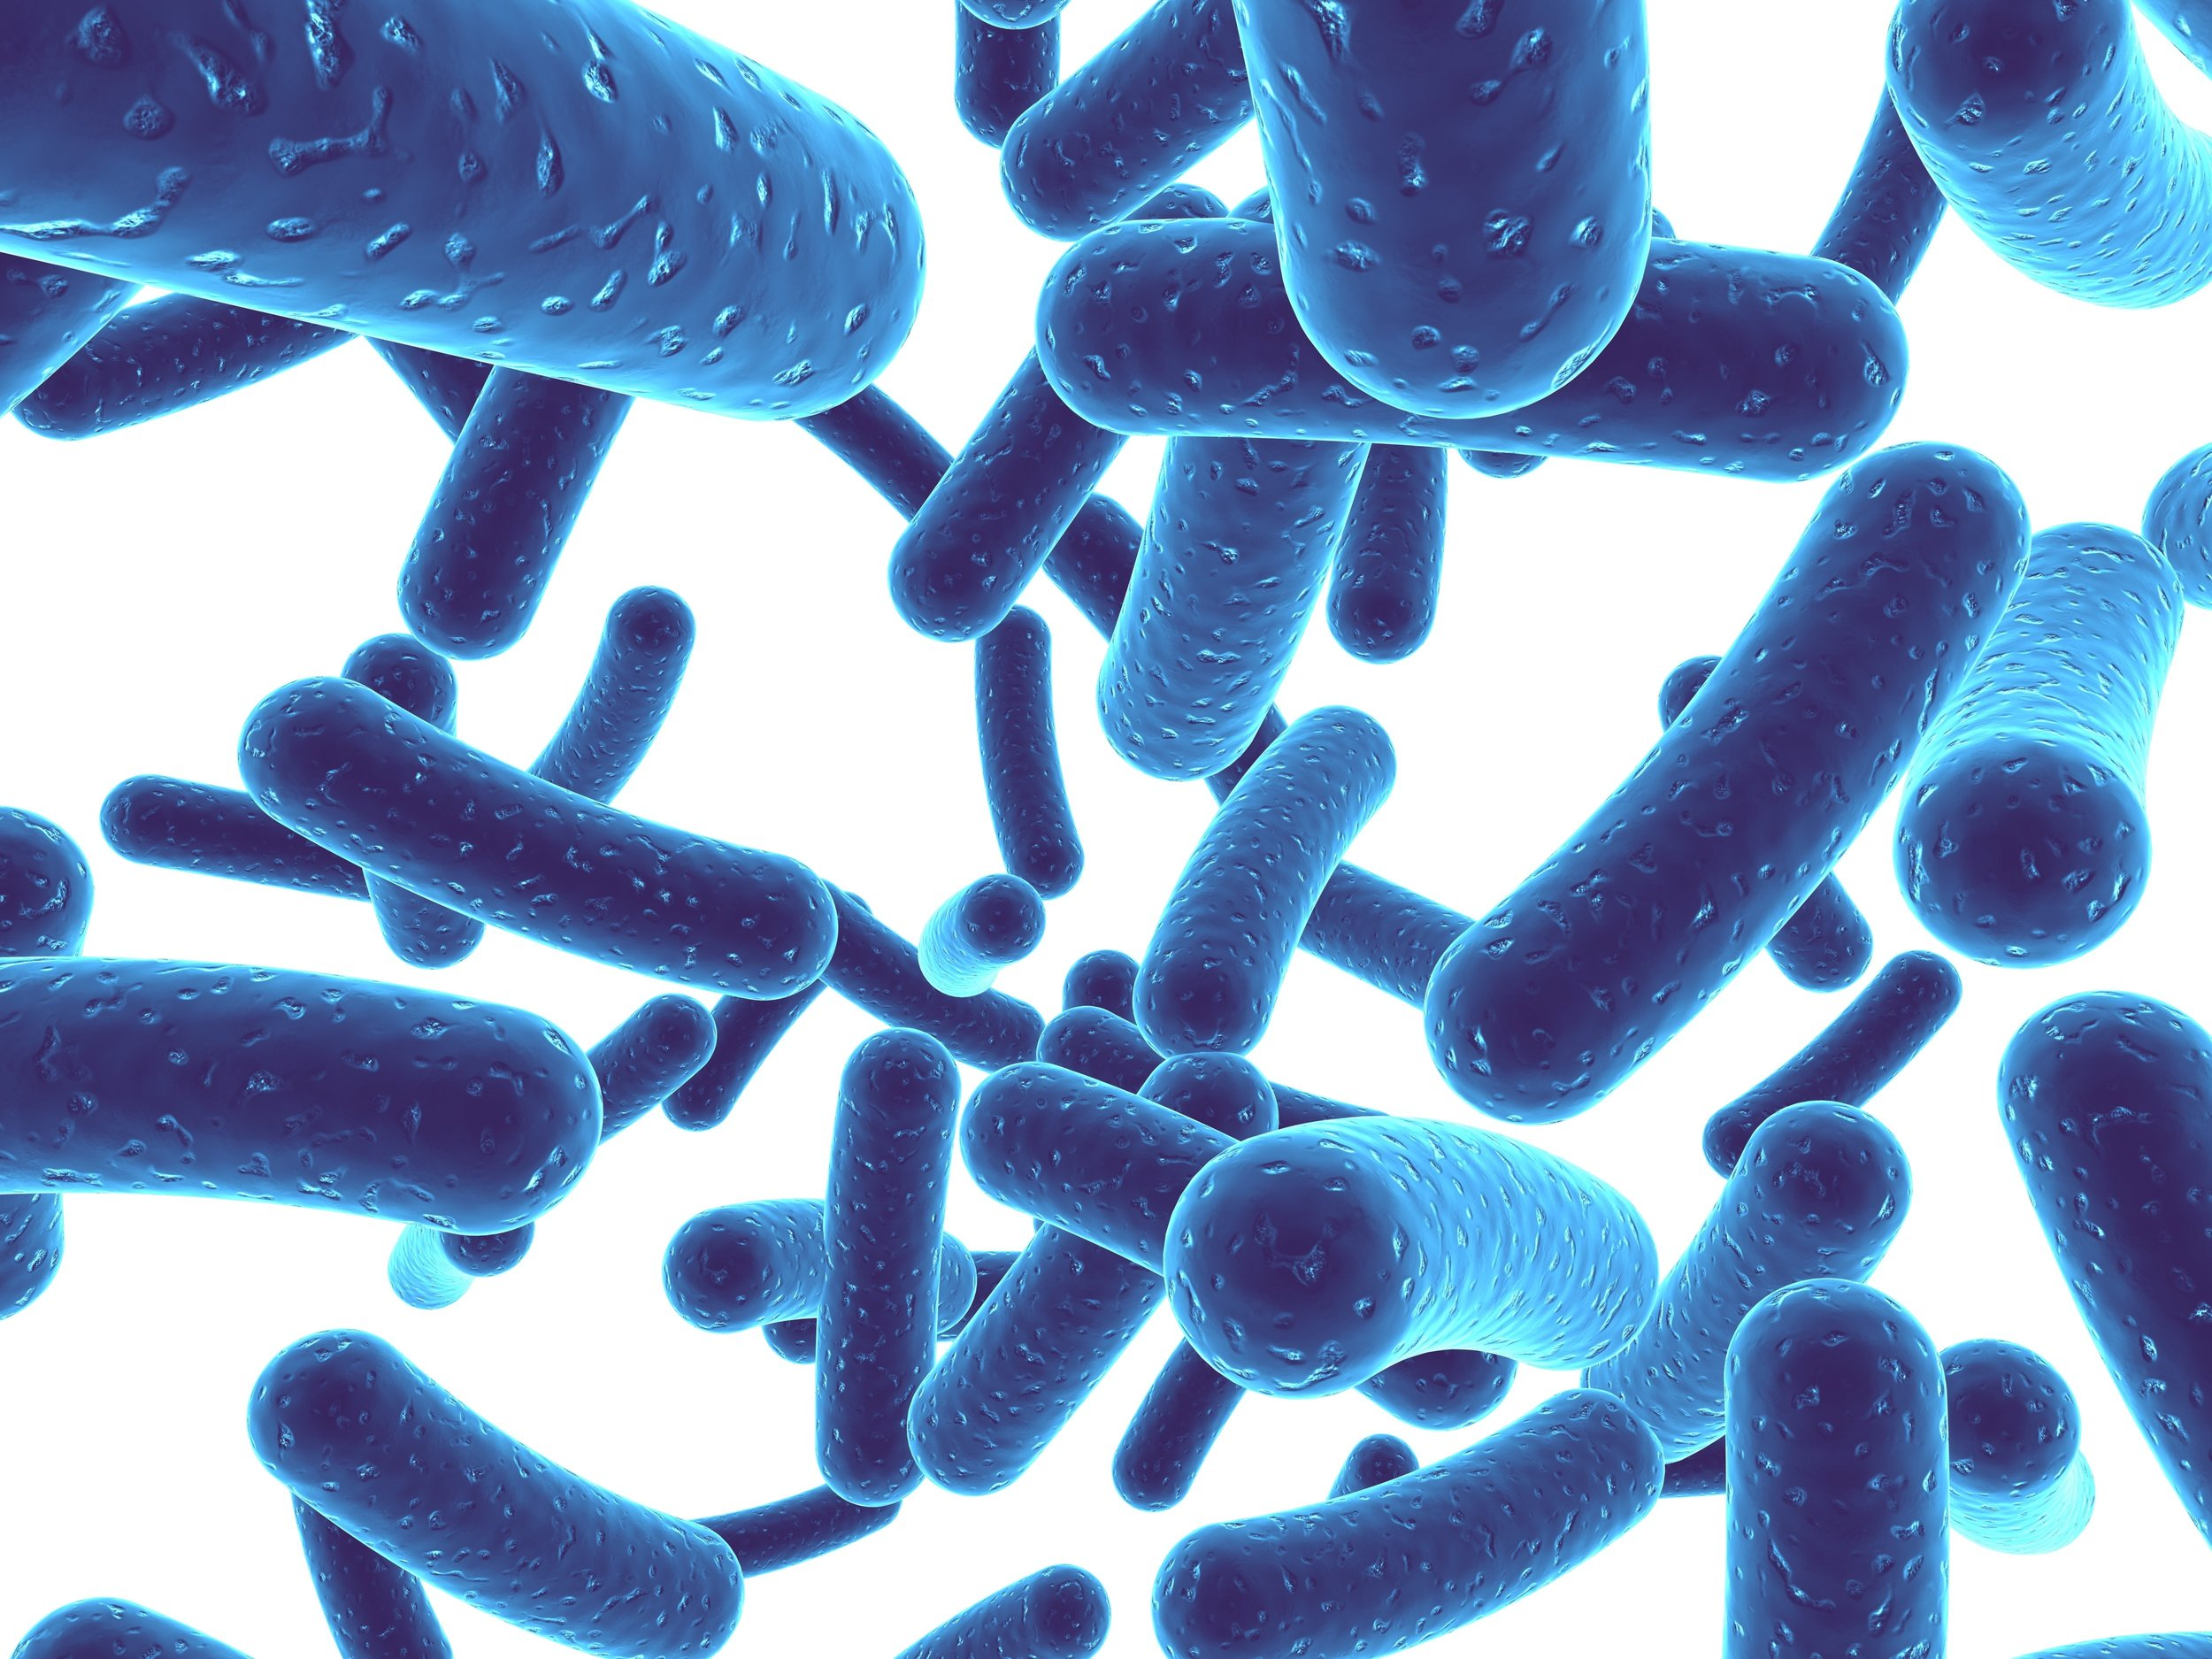 Bacteria. Probiotic bacteria can stimulate your vagus nerve and improve your mental health.